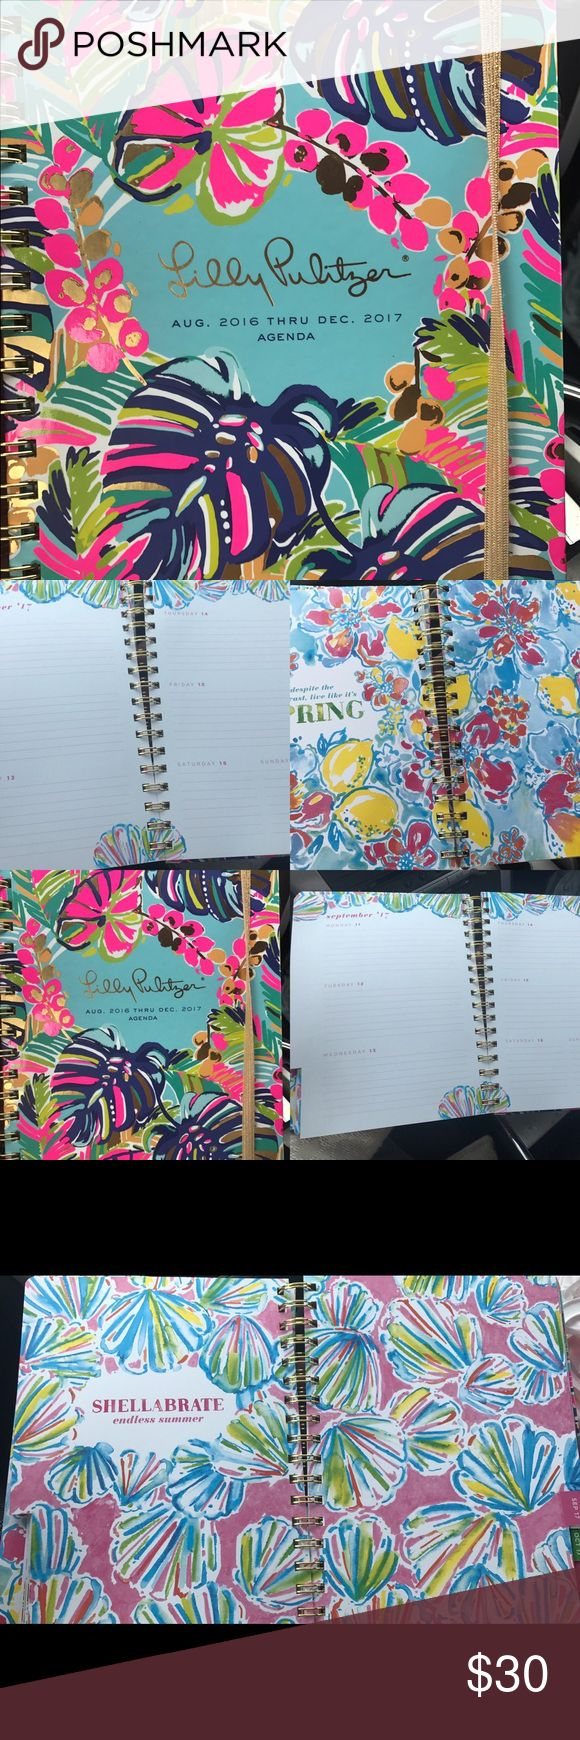 Lily Pulitzer agenda planner NEW! New ! Lily Pulitzer agenda goes to 12/31/17 includes notes sections, contacts, daily, weekly monthly and more ! Accessories